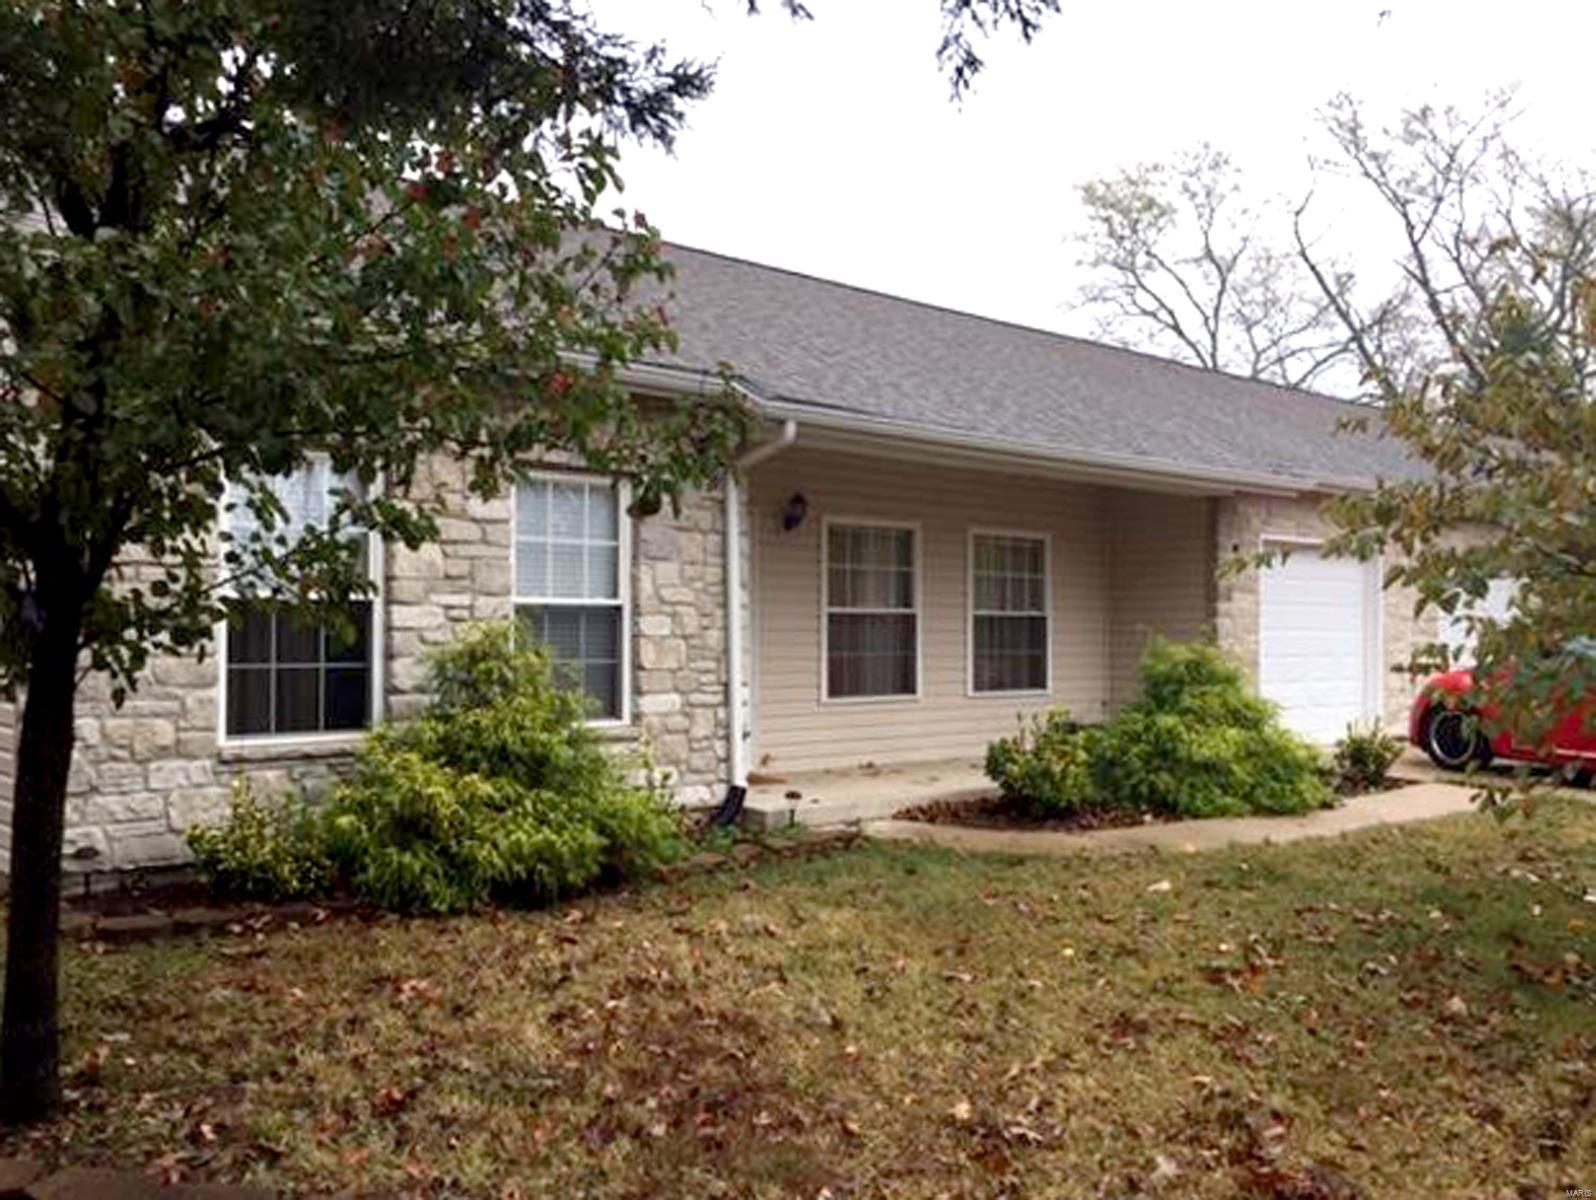 978 Pathways Property Photo - Leslie, MO real estate listing